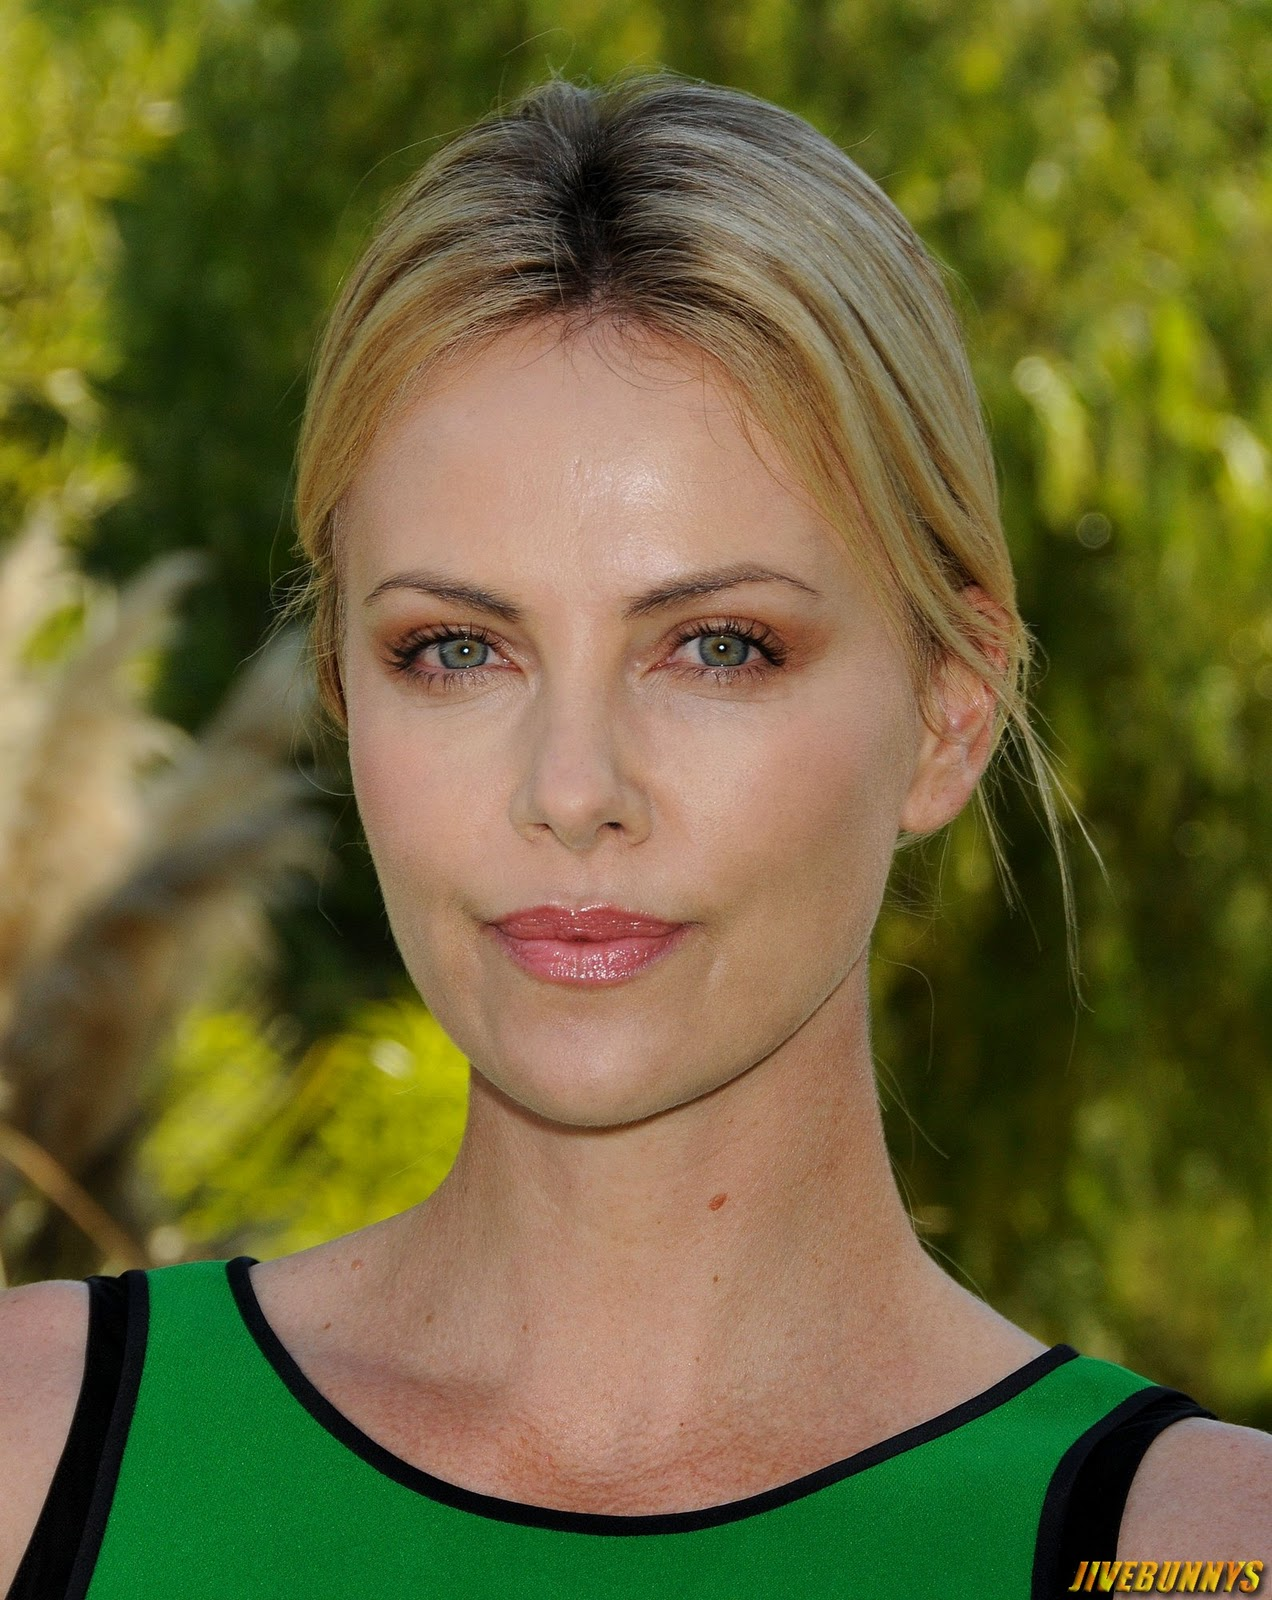 Charlize Theron In Versace For British Vogue: Charlize Theron Special Pictures (17)